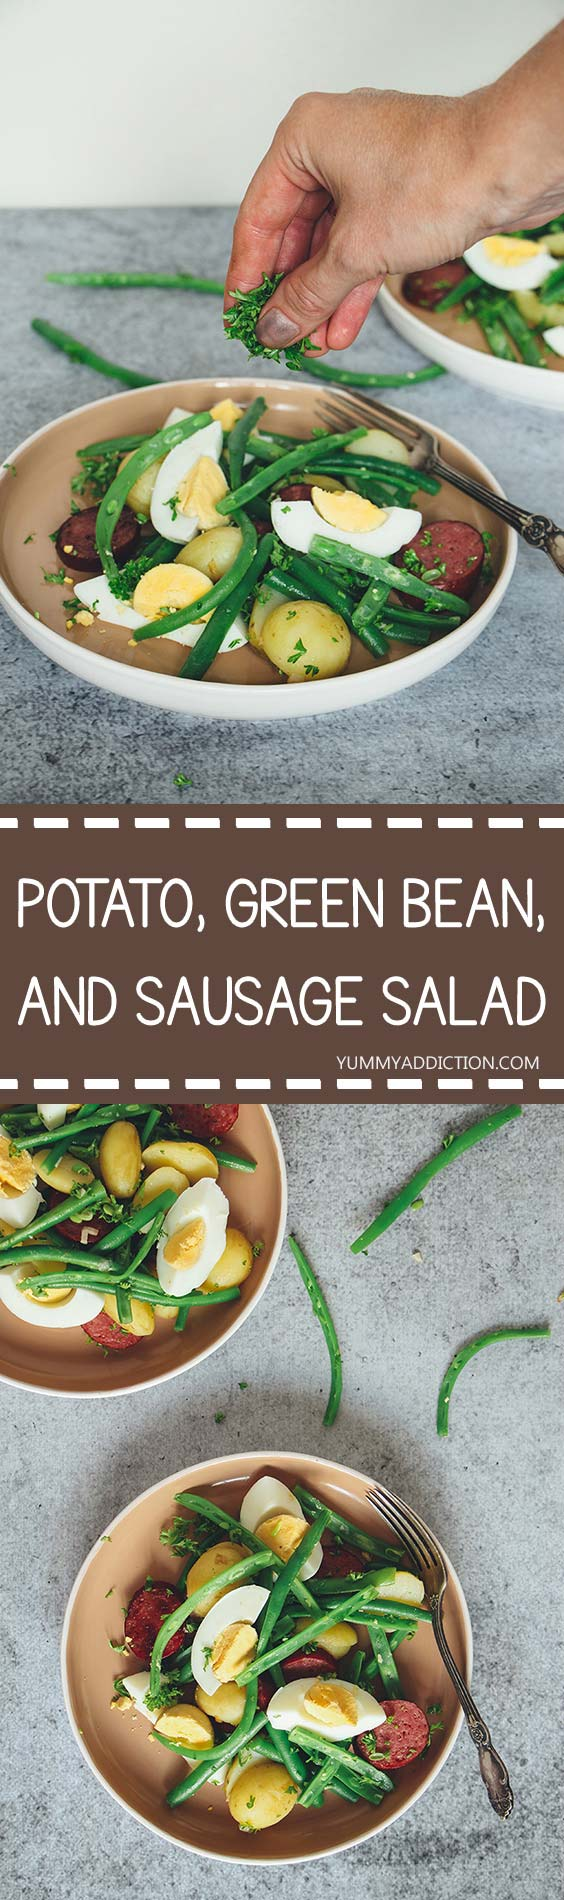 This warm sausage salad with fresh baby potatoes, green beans, and eggs makes a great summer lunch. It's filling but light at the same time! | yummyaddiction.com